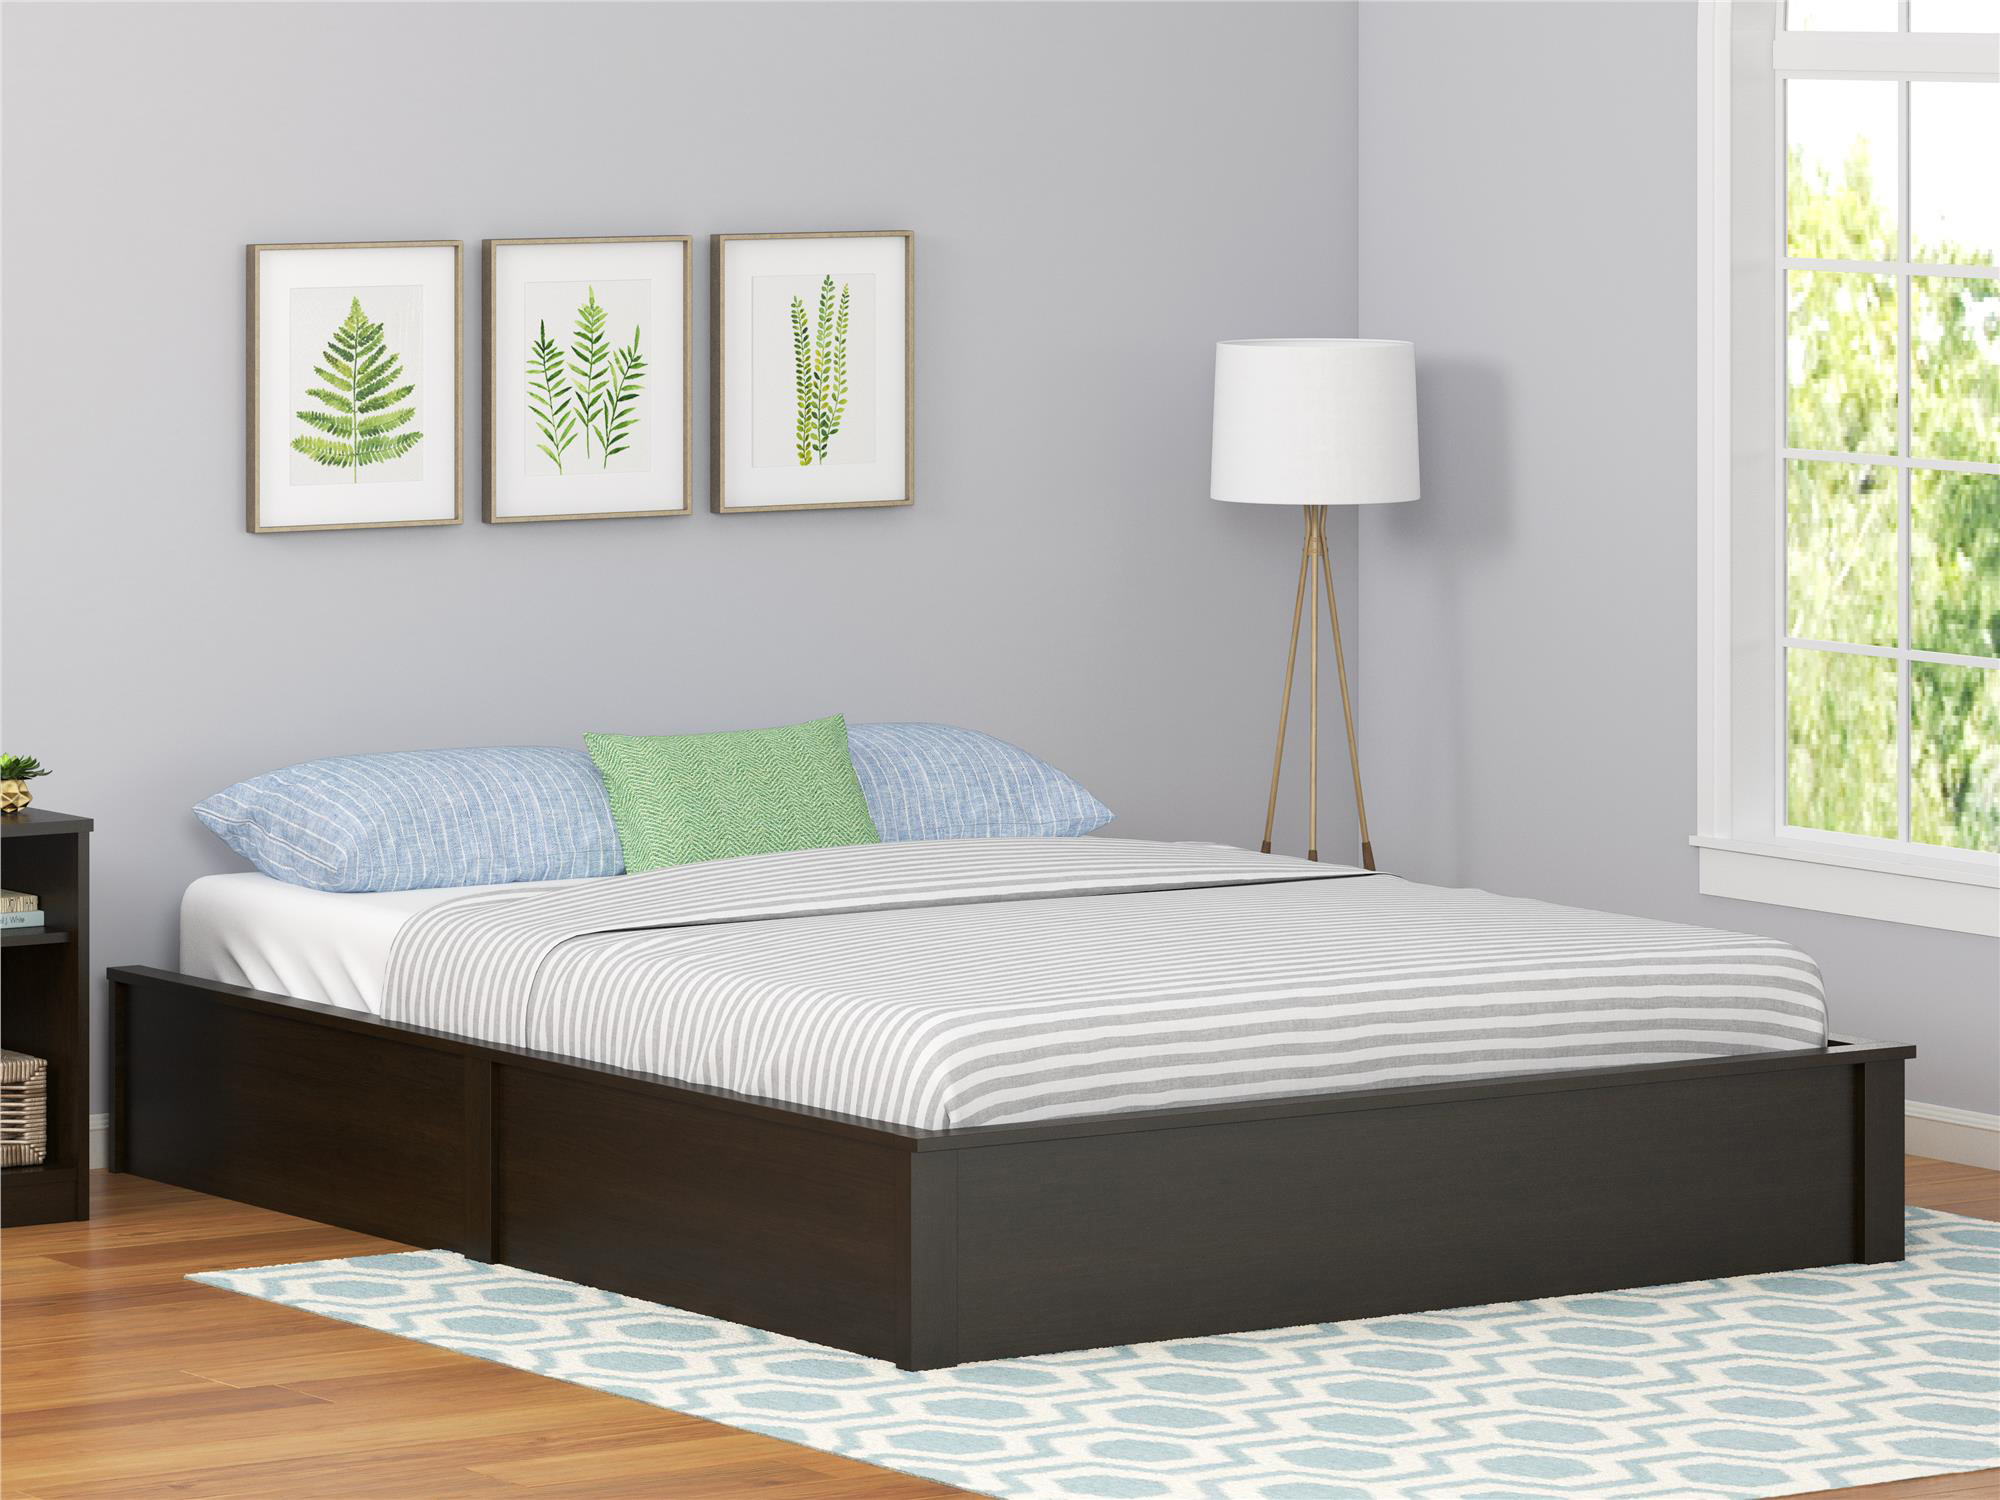 Ameriwood Home Platform Bed Frame, Multiple Colors and Sizes by Ameriwood Home